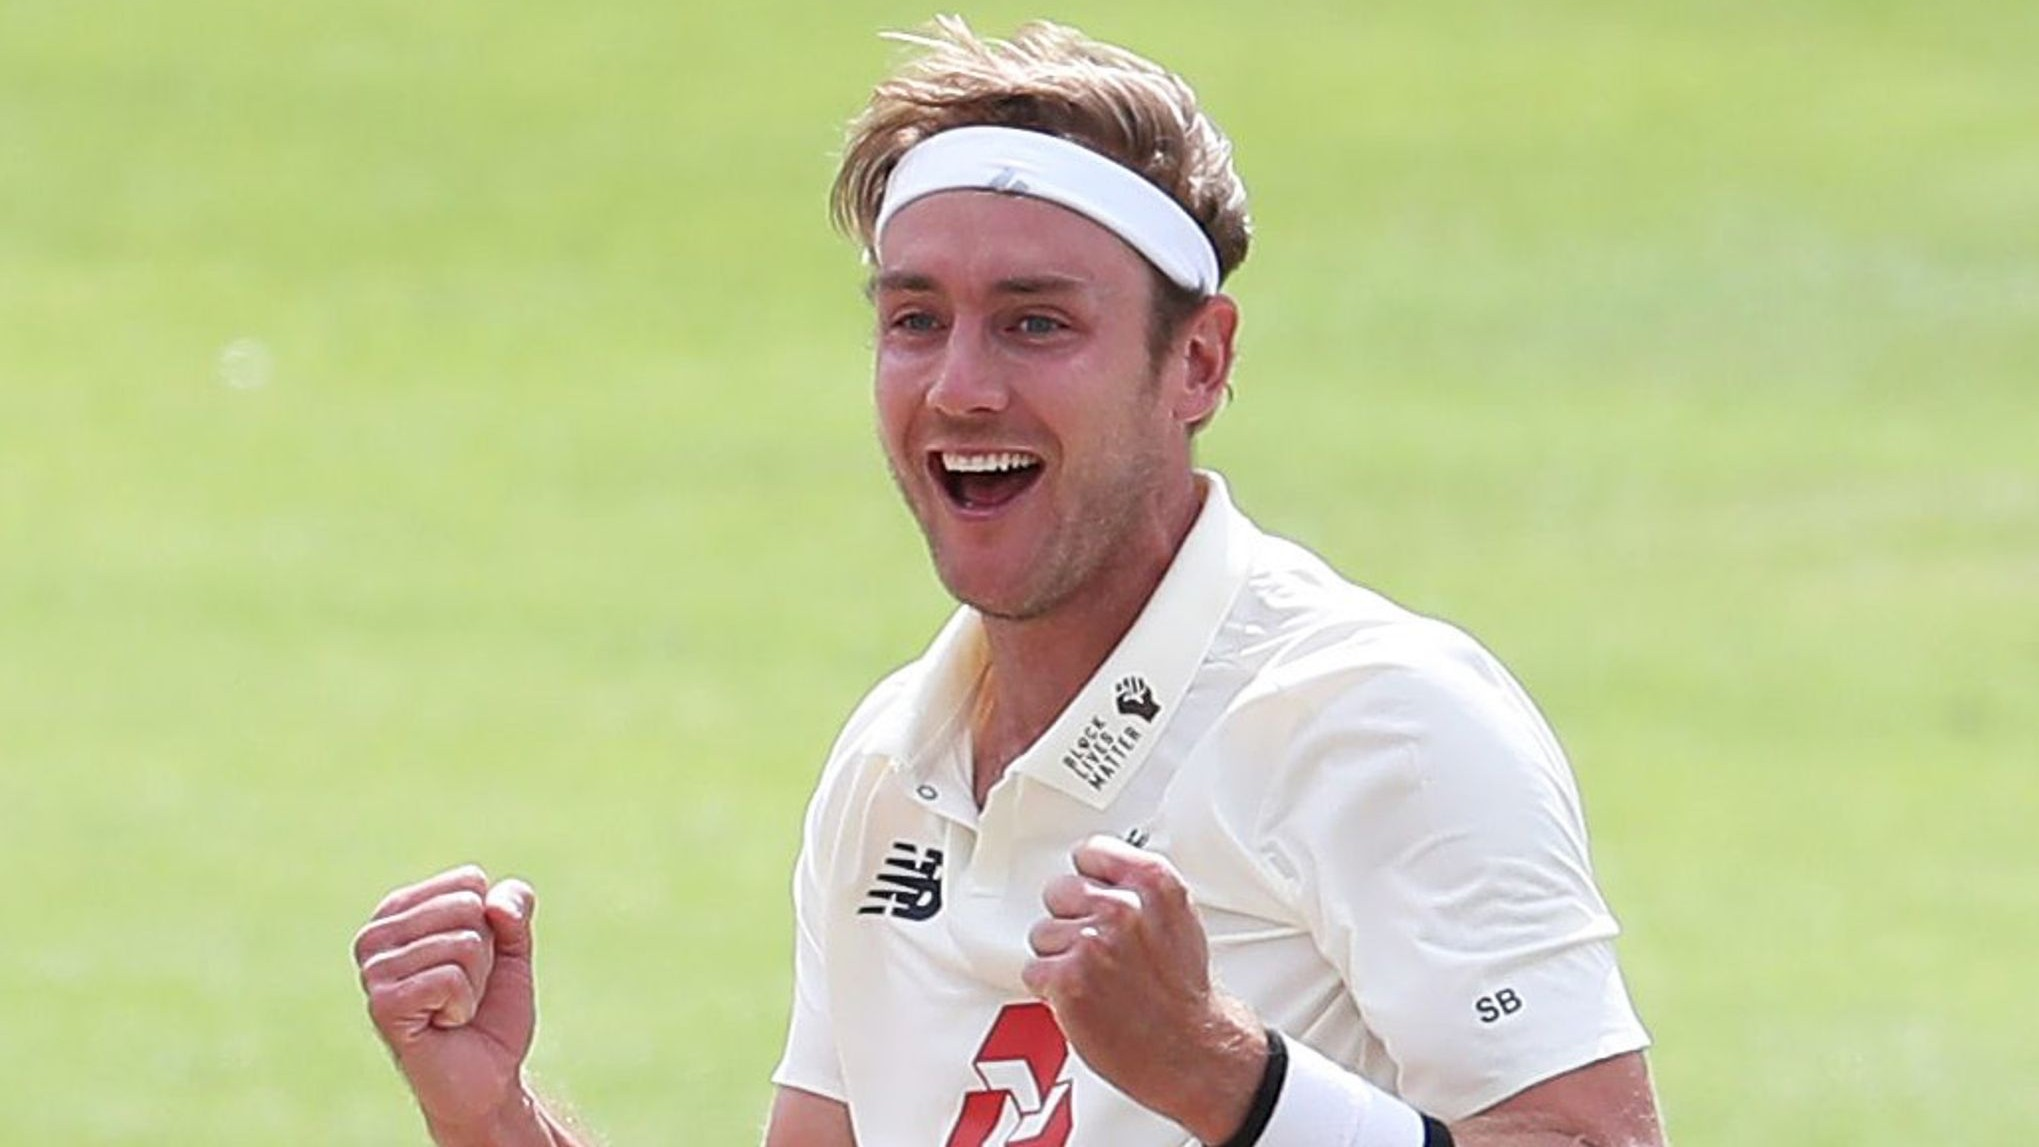 Stuart Broad jumps to no.3 in ICC Test bowlers rankings with 16 wickets against West Indies